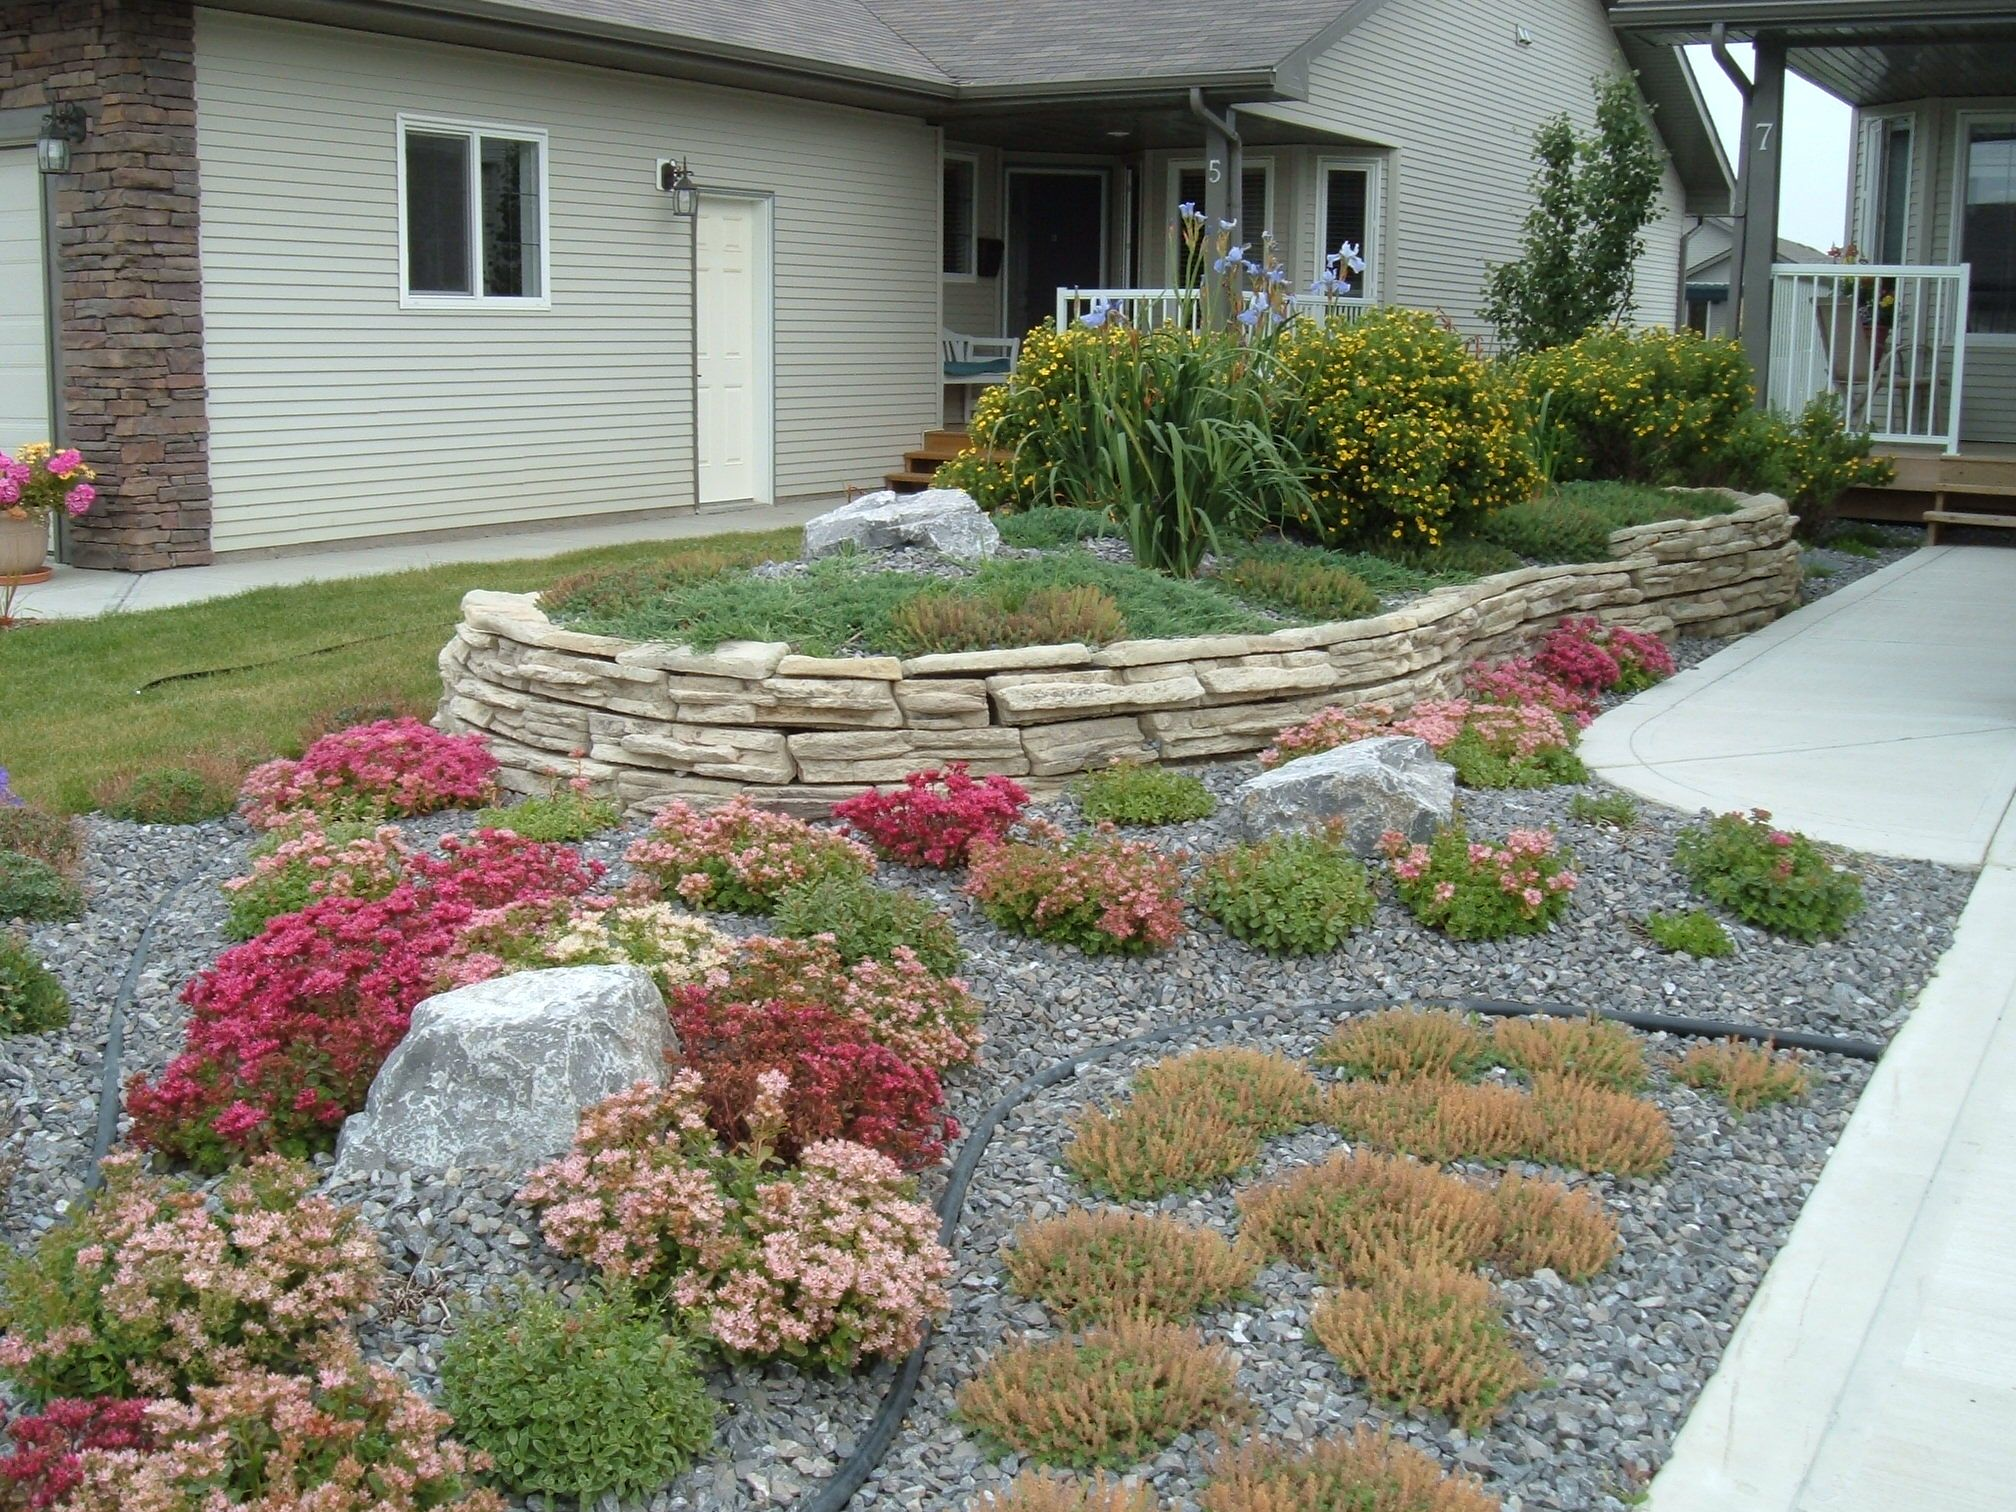 Minimal maintenance landscaping a no lawn front yard with for Plants that require no maintenance